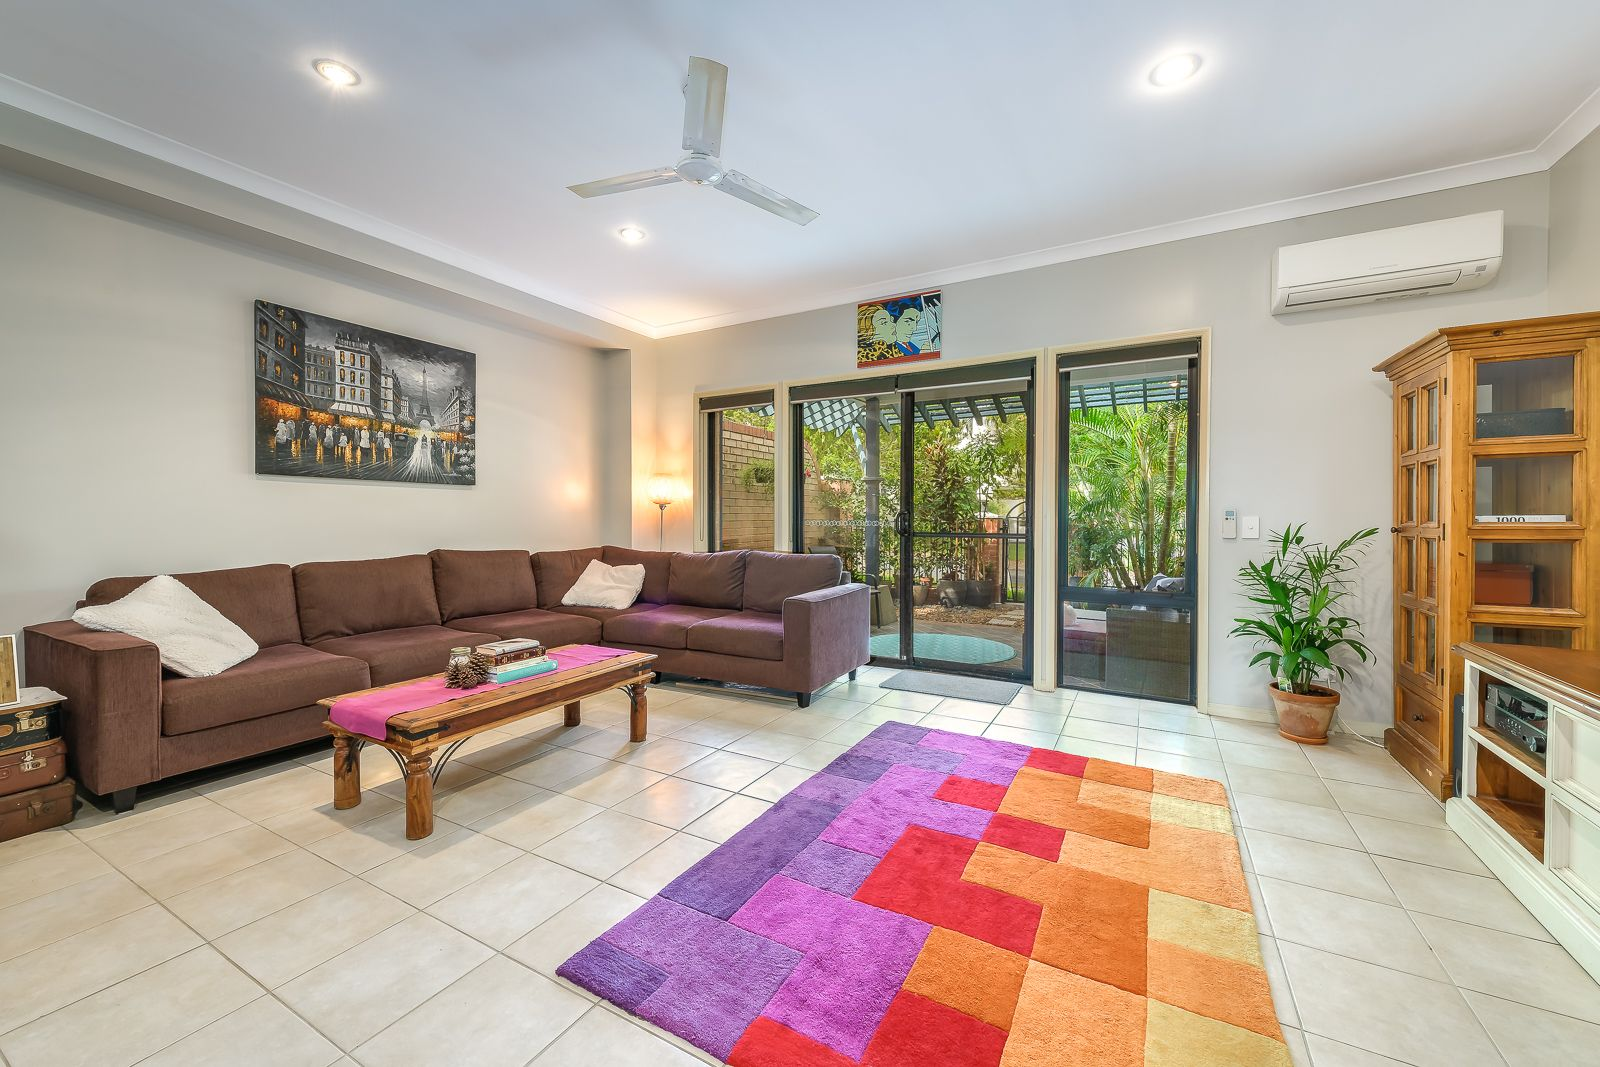 7/1 Hillridge Crescent, Varsity Lakes QLD 4227, Image 2